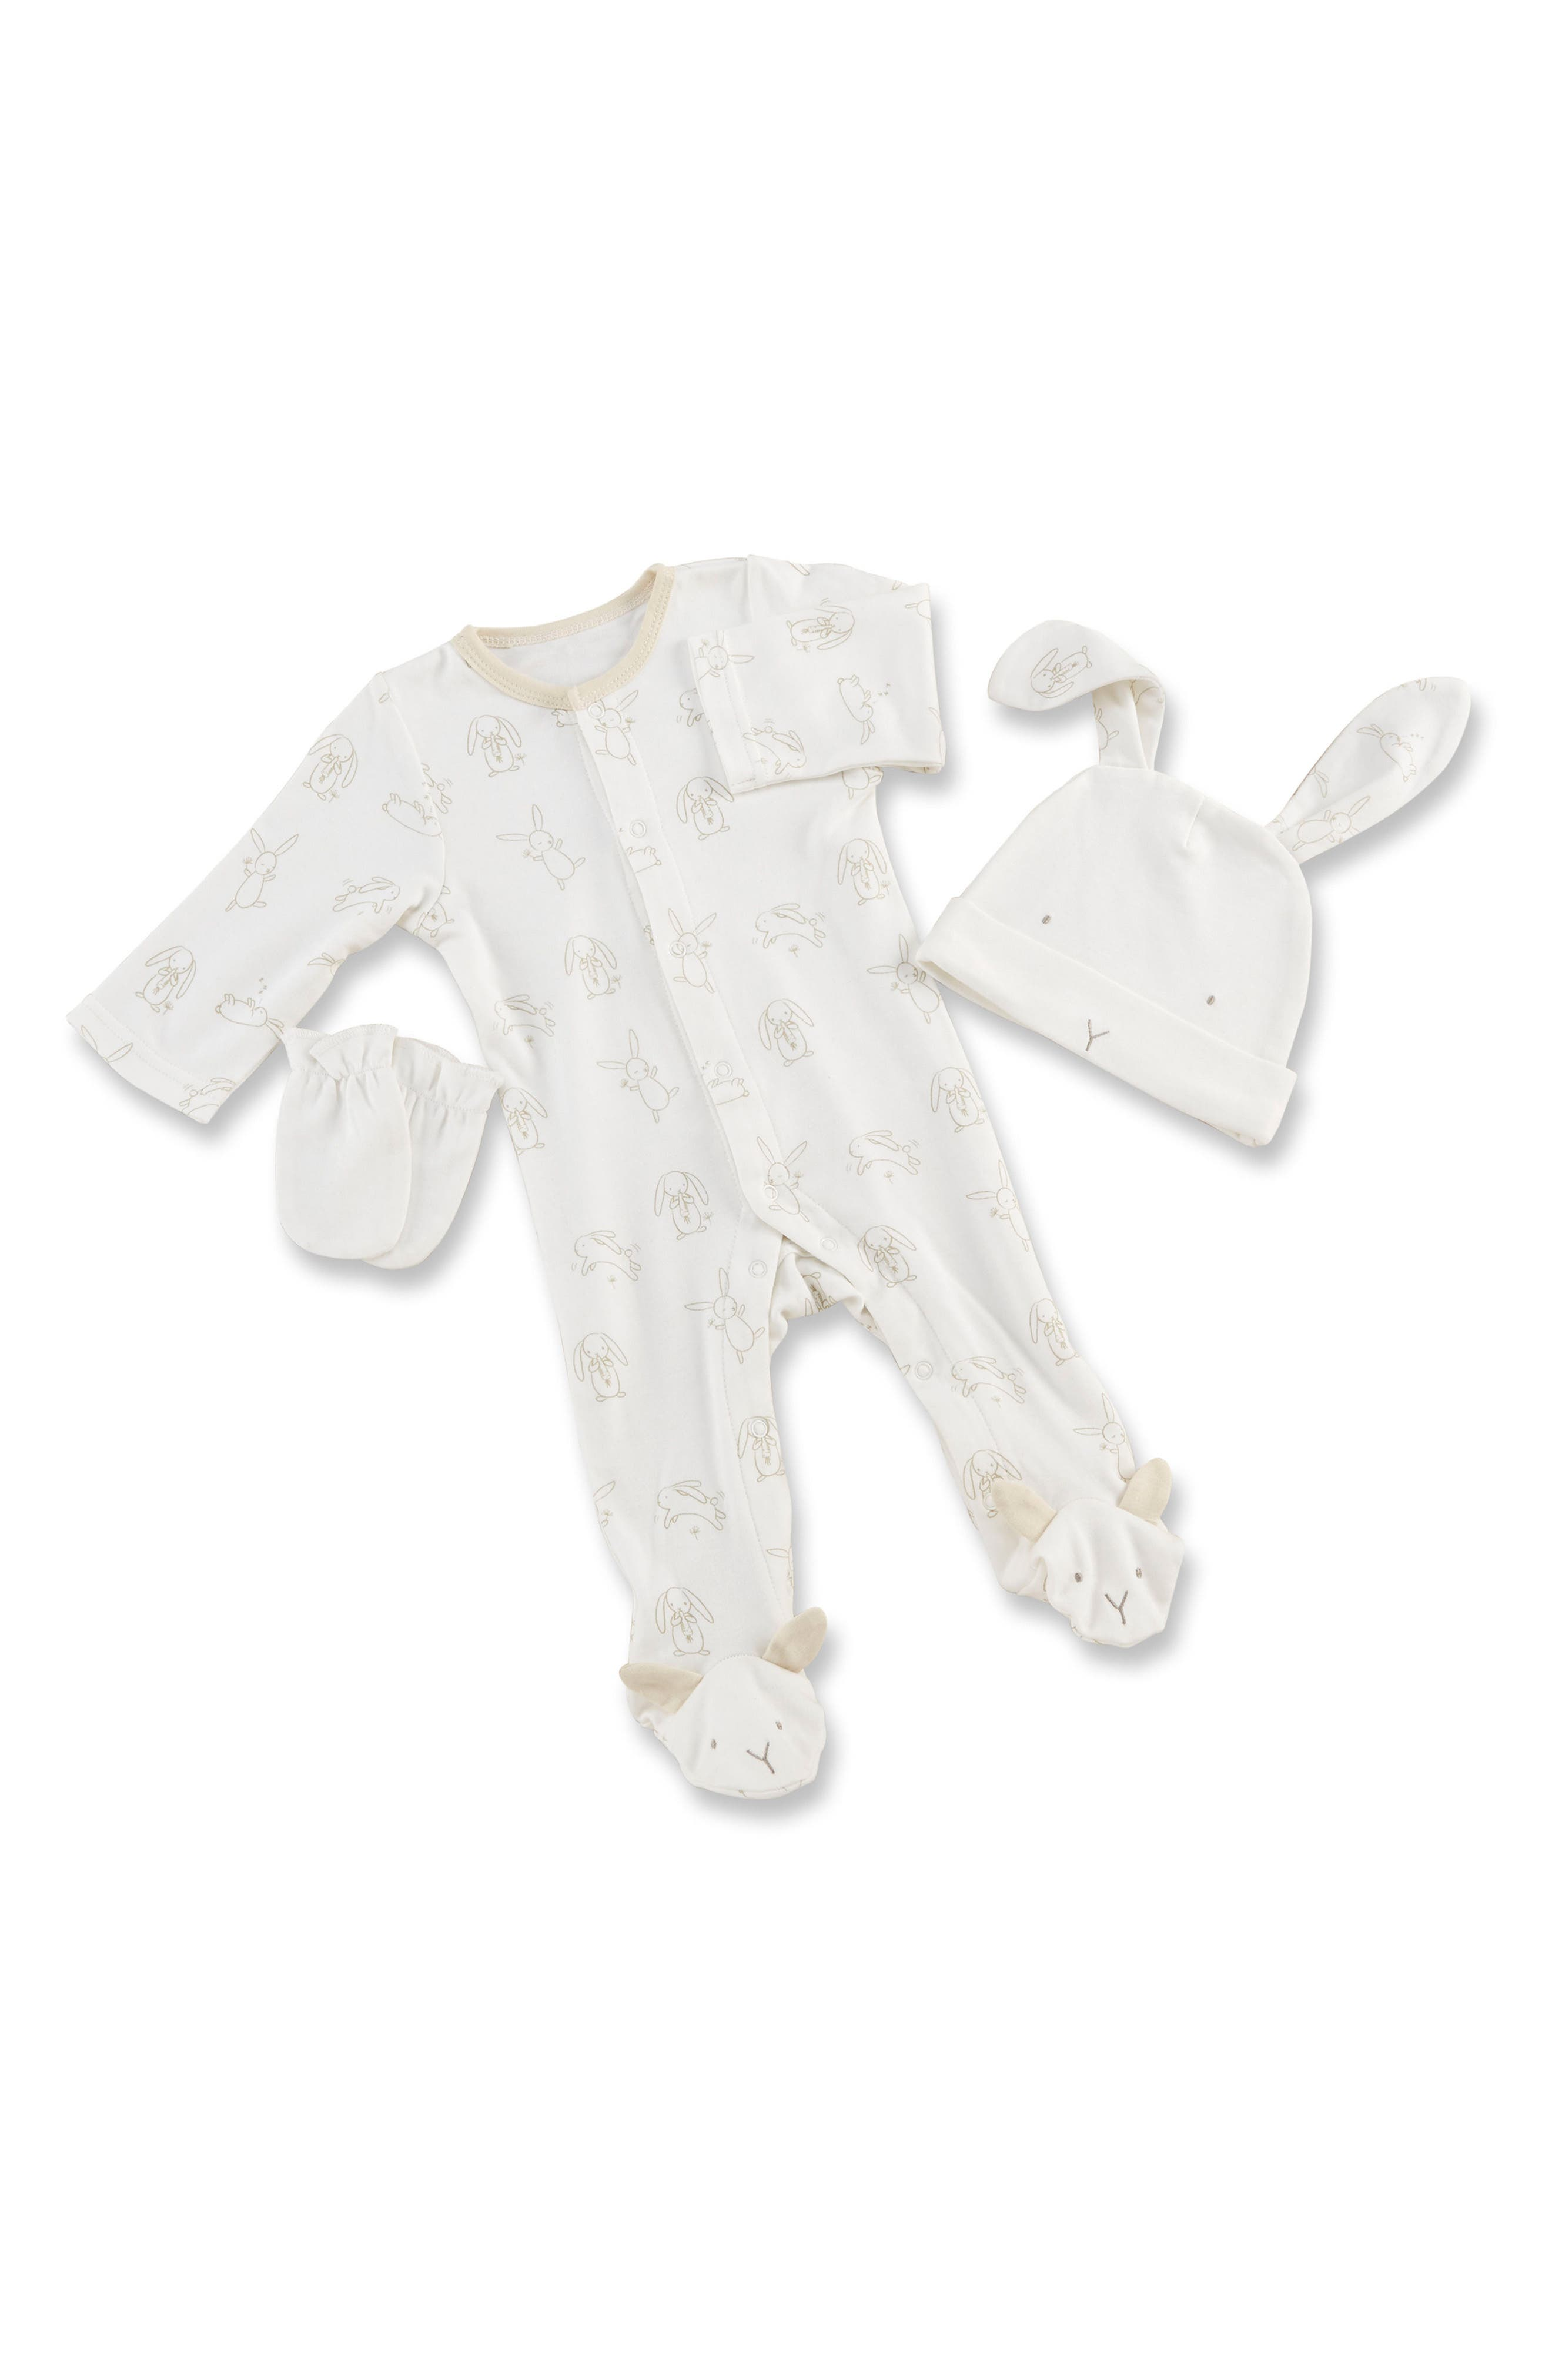 Alternate Image 1 Selected - Baby Aspen Nature Baby Footie, Hat & Mittens Set (Baby)